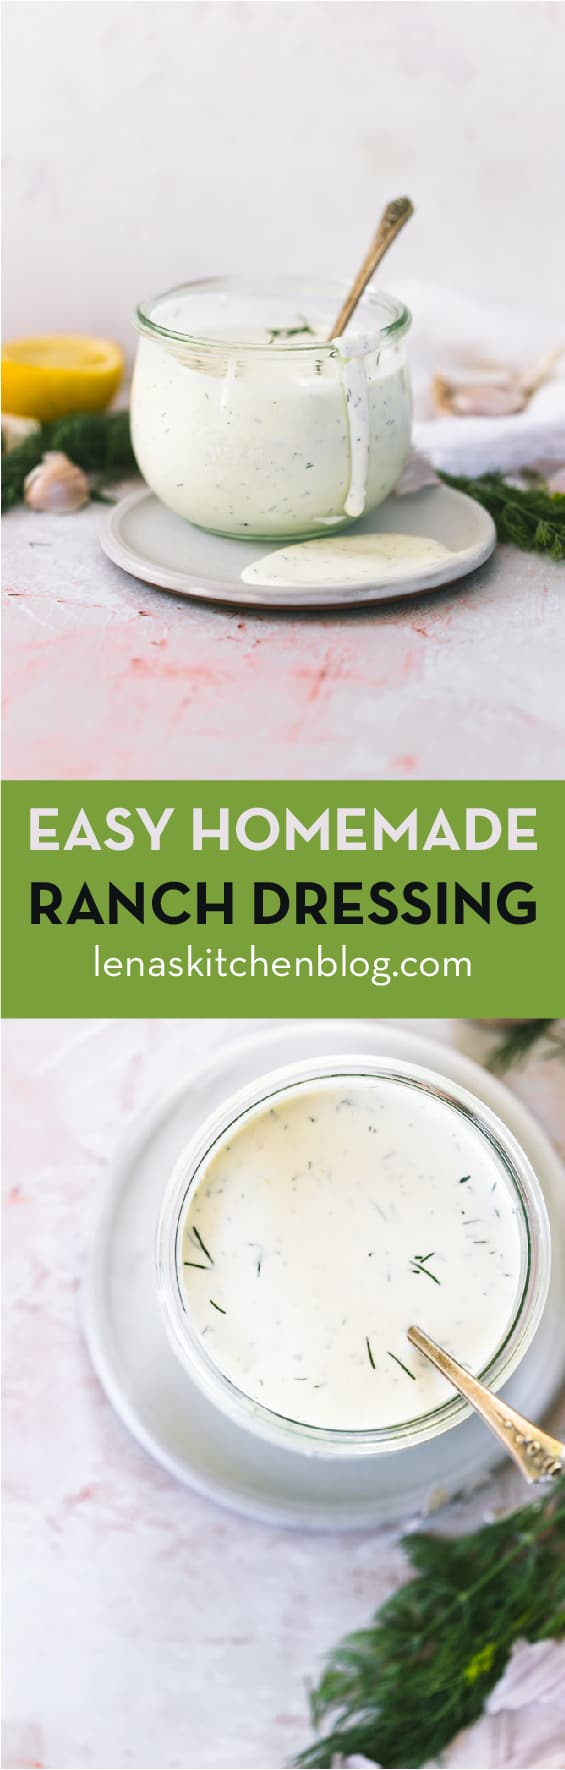 EASY HOMEMADE RANCH DRESSING by lenaskitchenblog.com